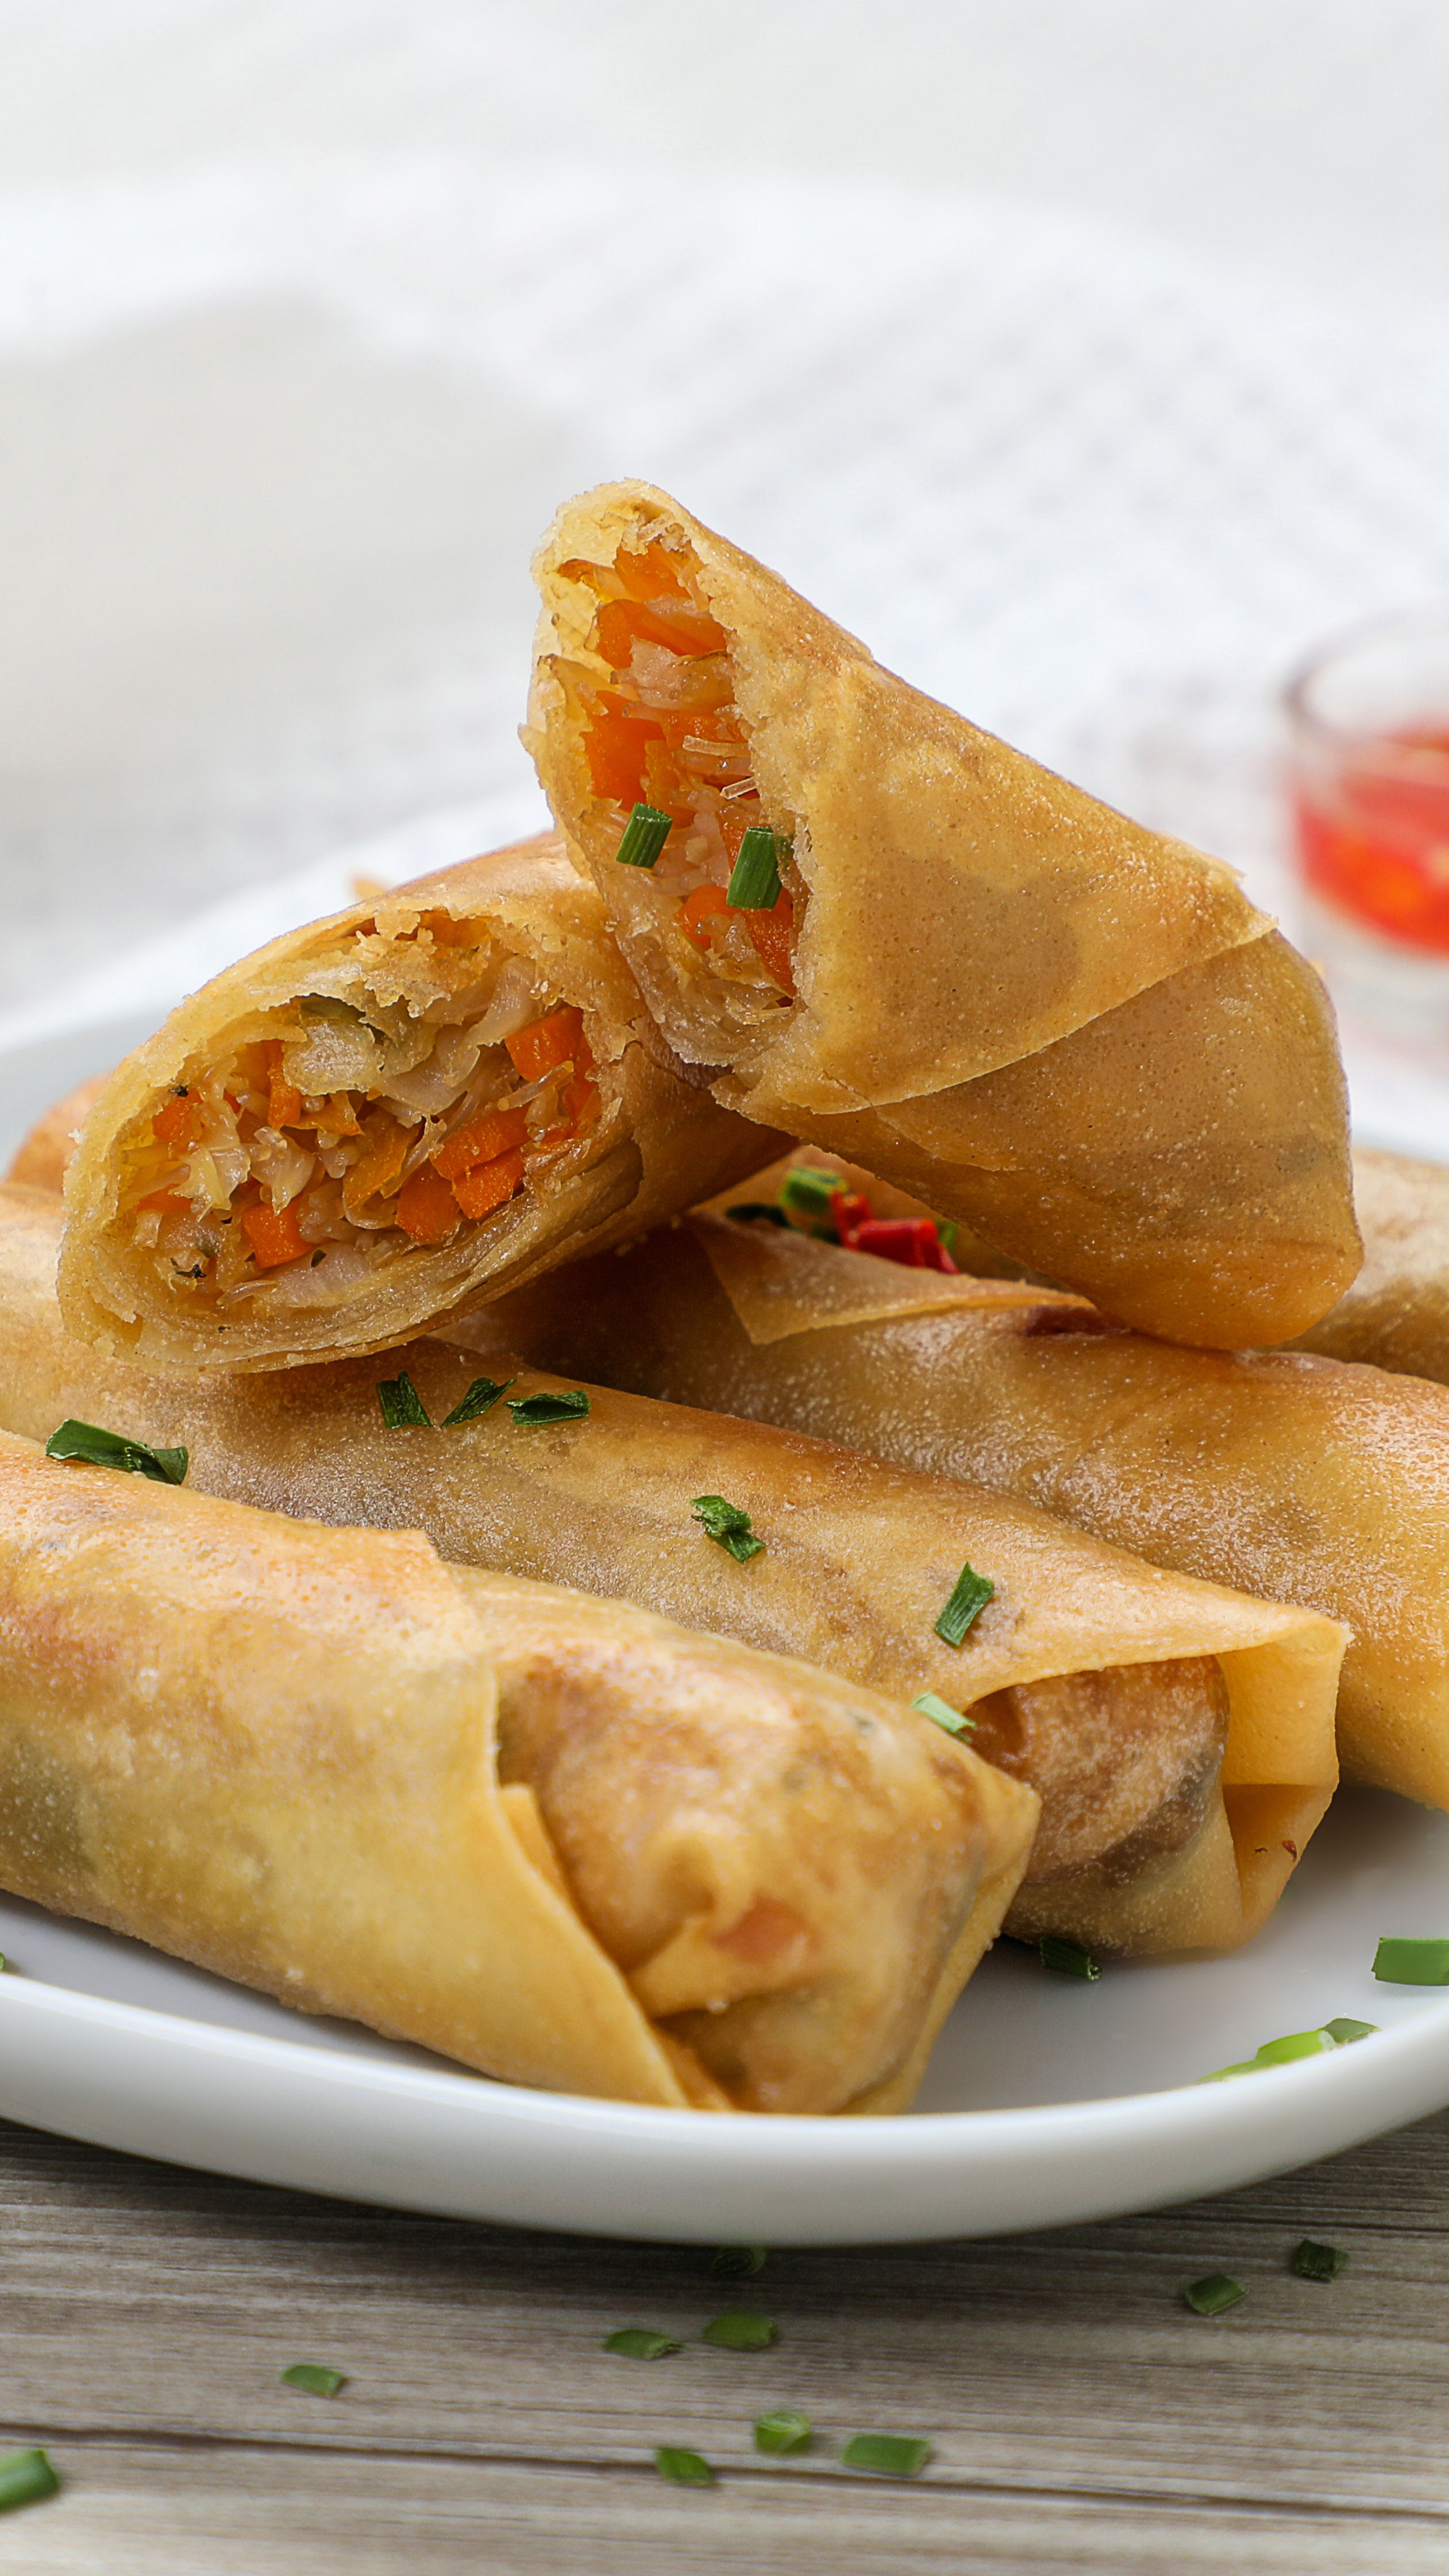 Vegetable Spring Roll سبرينغ رول بالخضار In 2020 Cooking Recipes Recipes Cooking